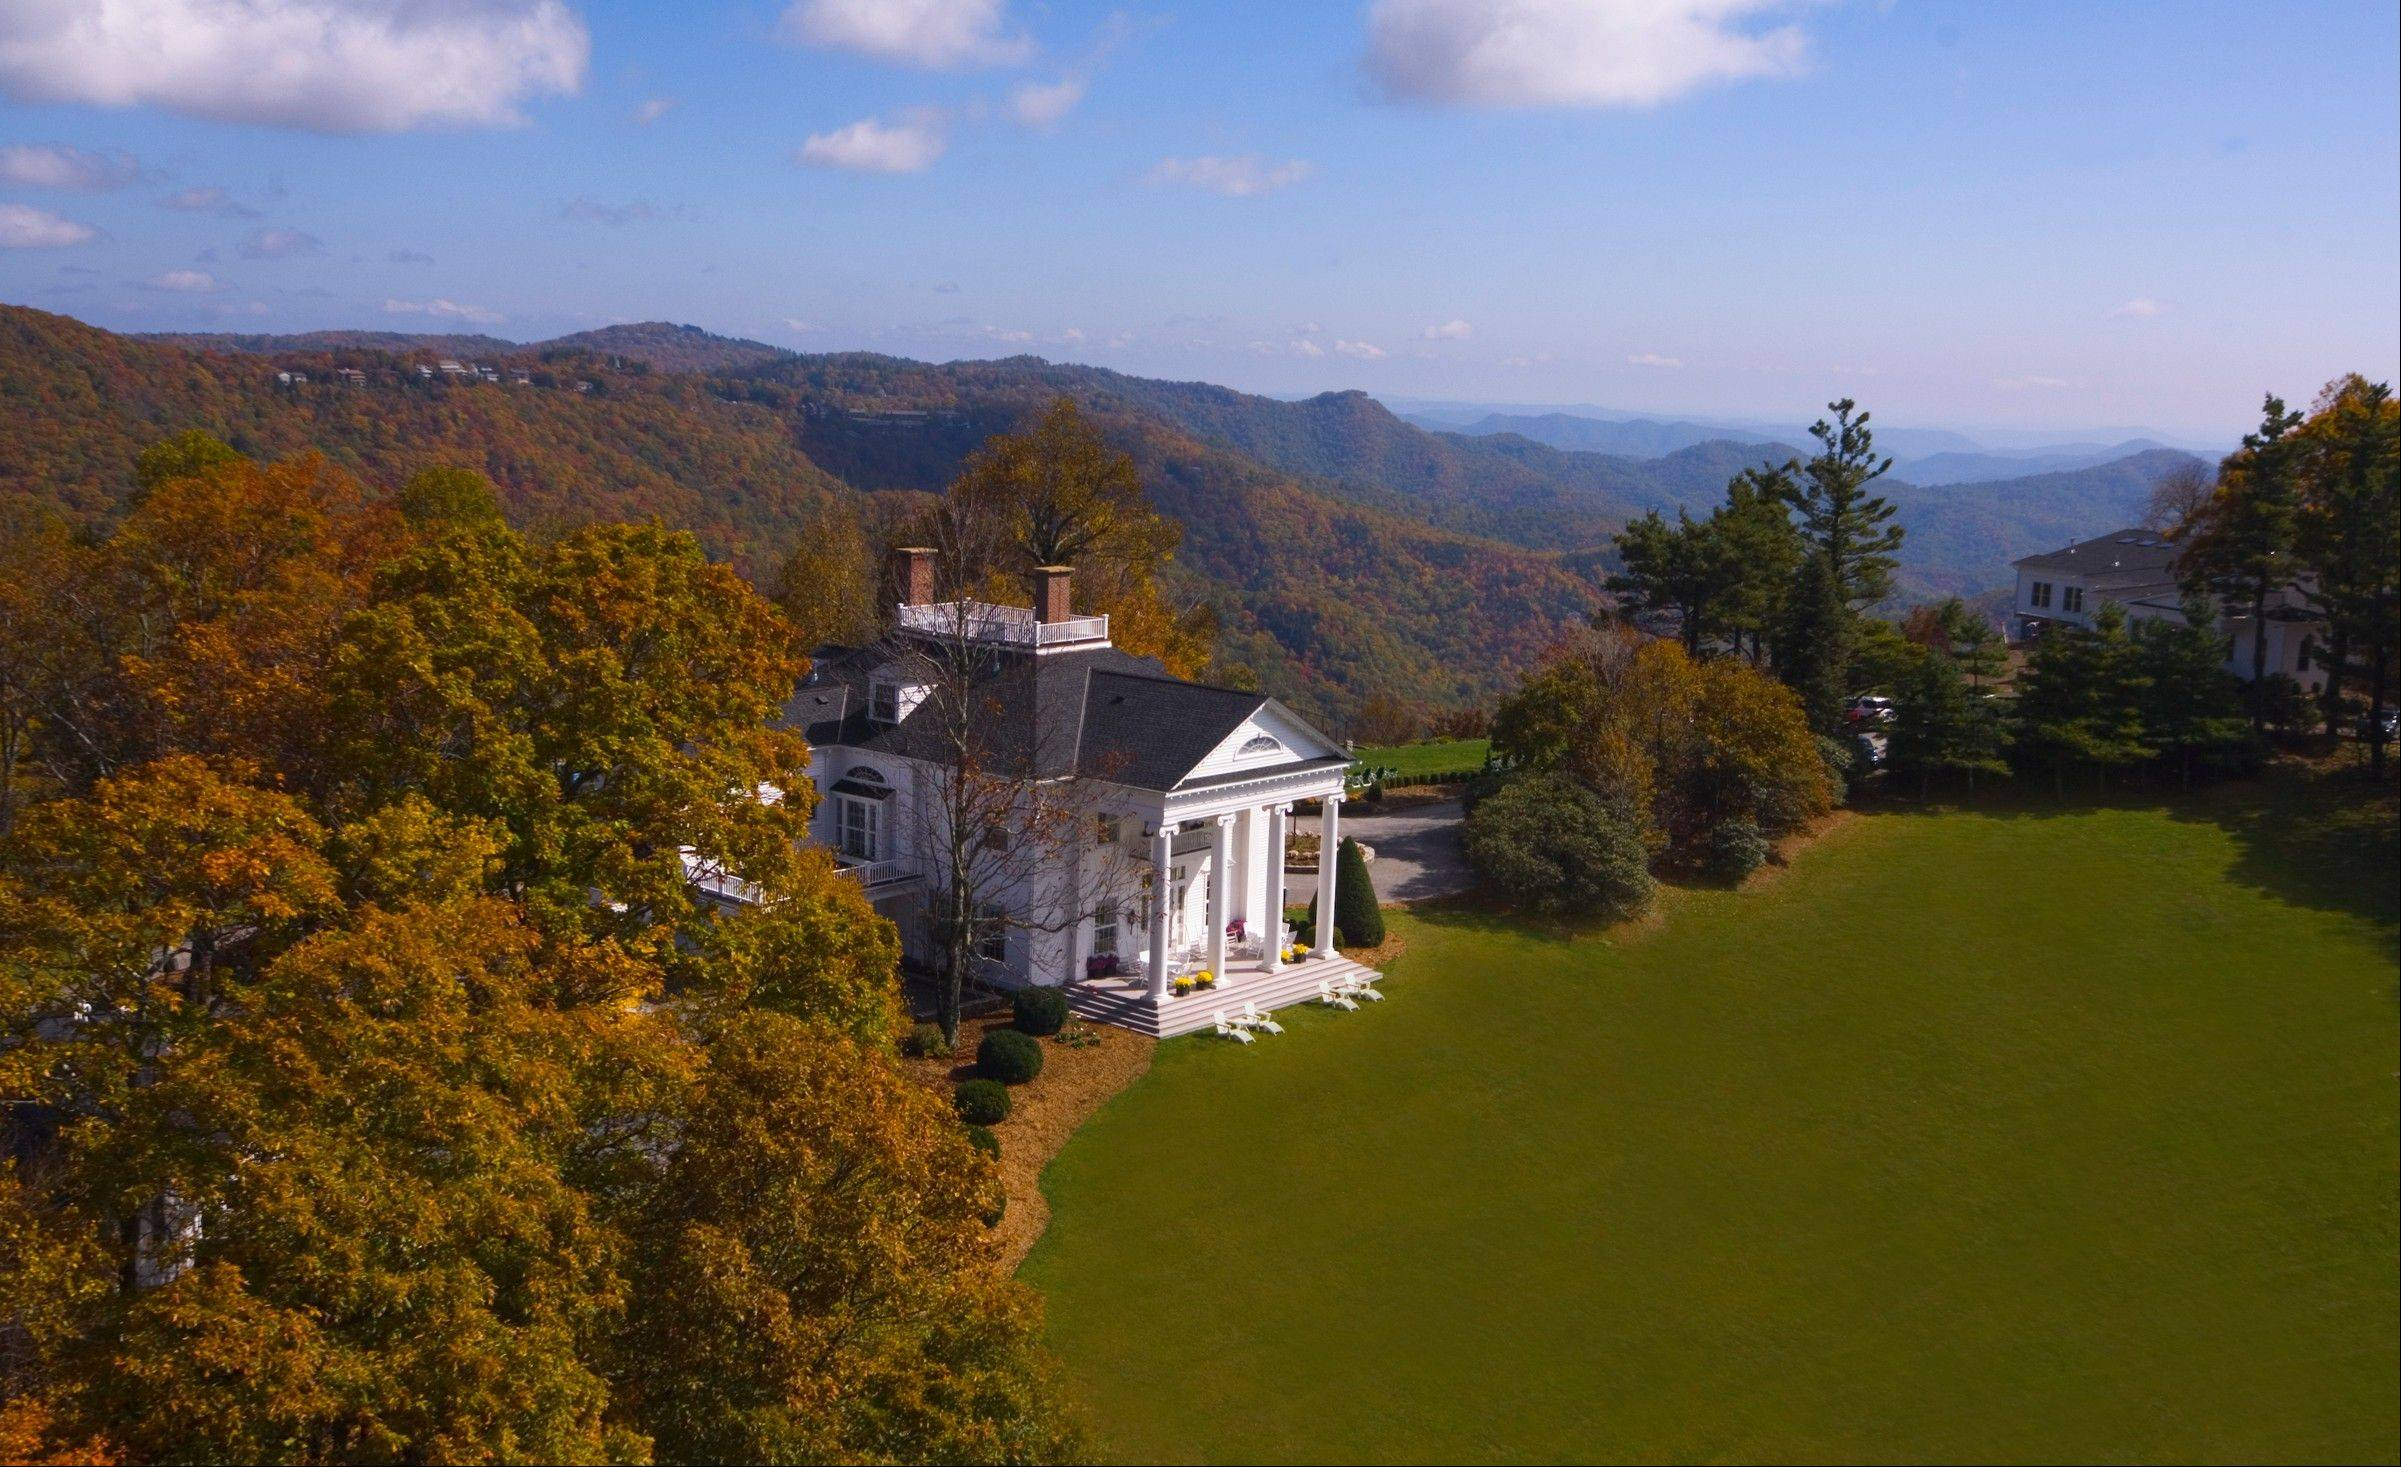 Westglow Resort & Spa, is situated in a historic Greek Revival mansion, built in 1916.